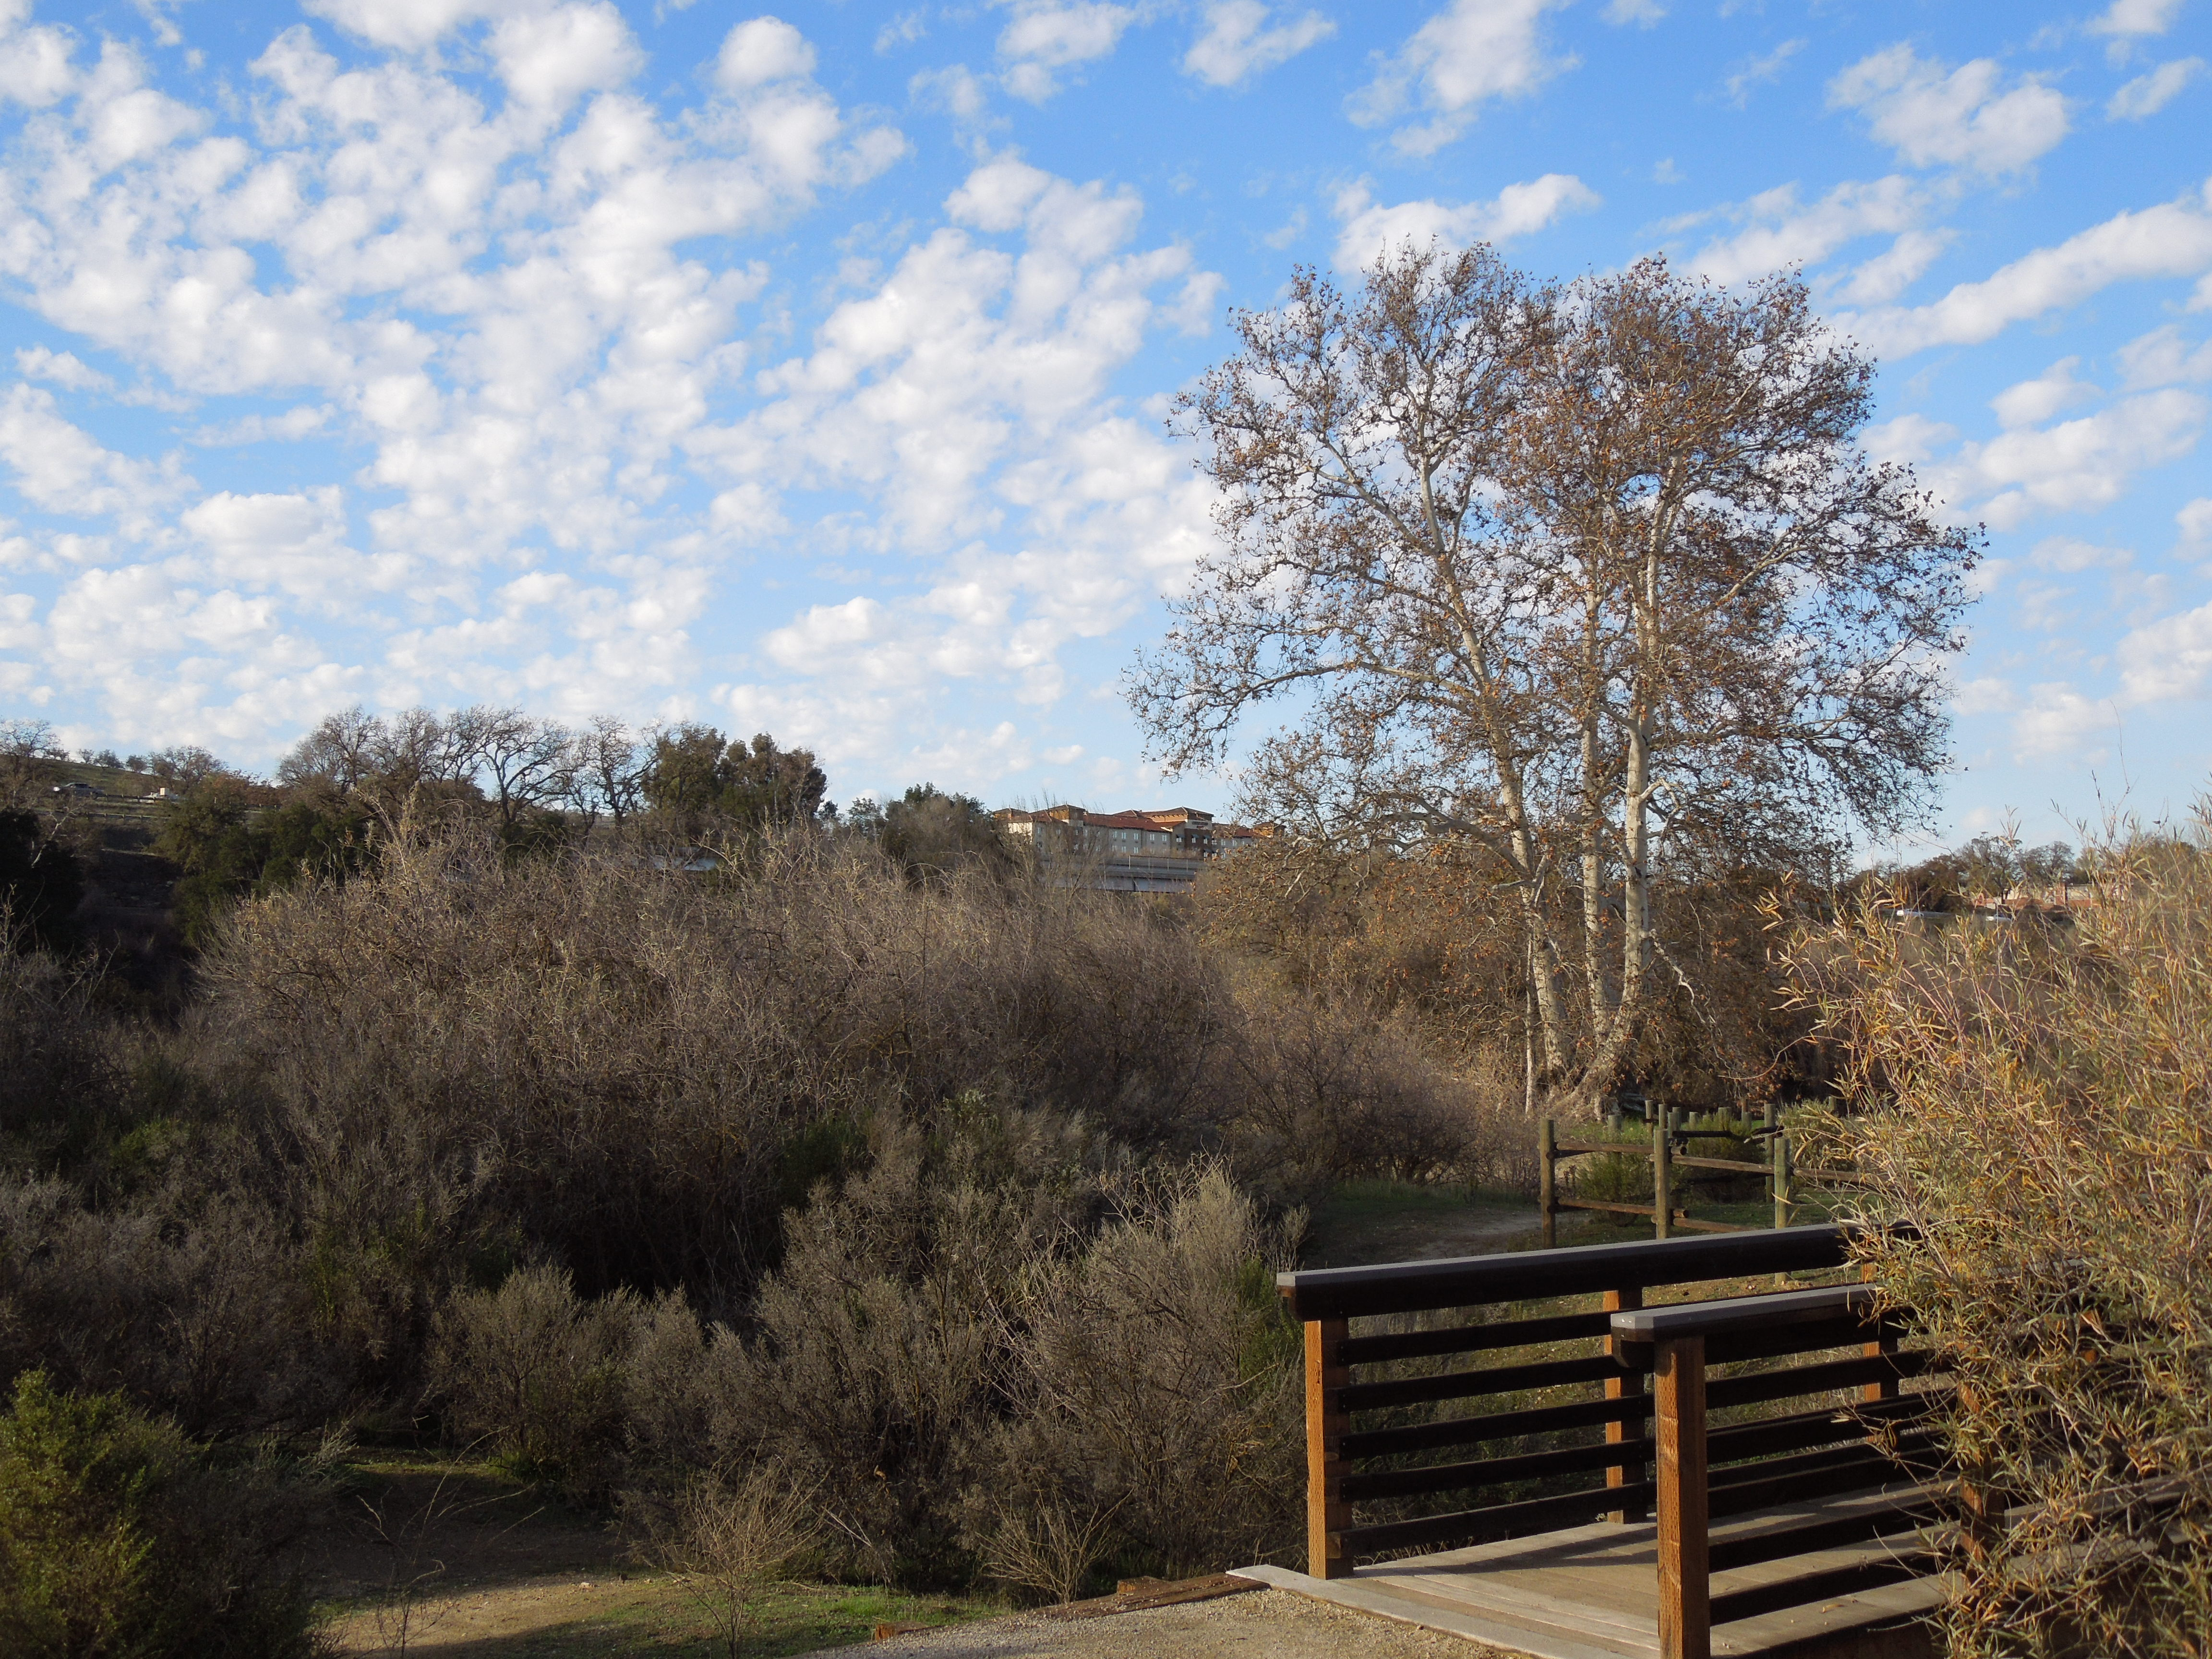 Footbridge over Creek at Larry Moore Park in Paso Robles